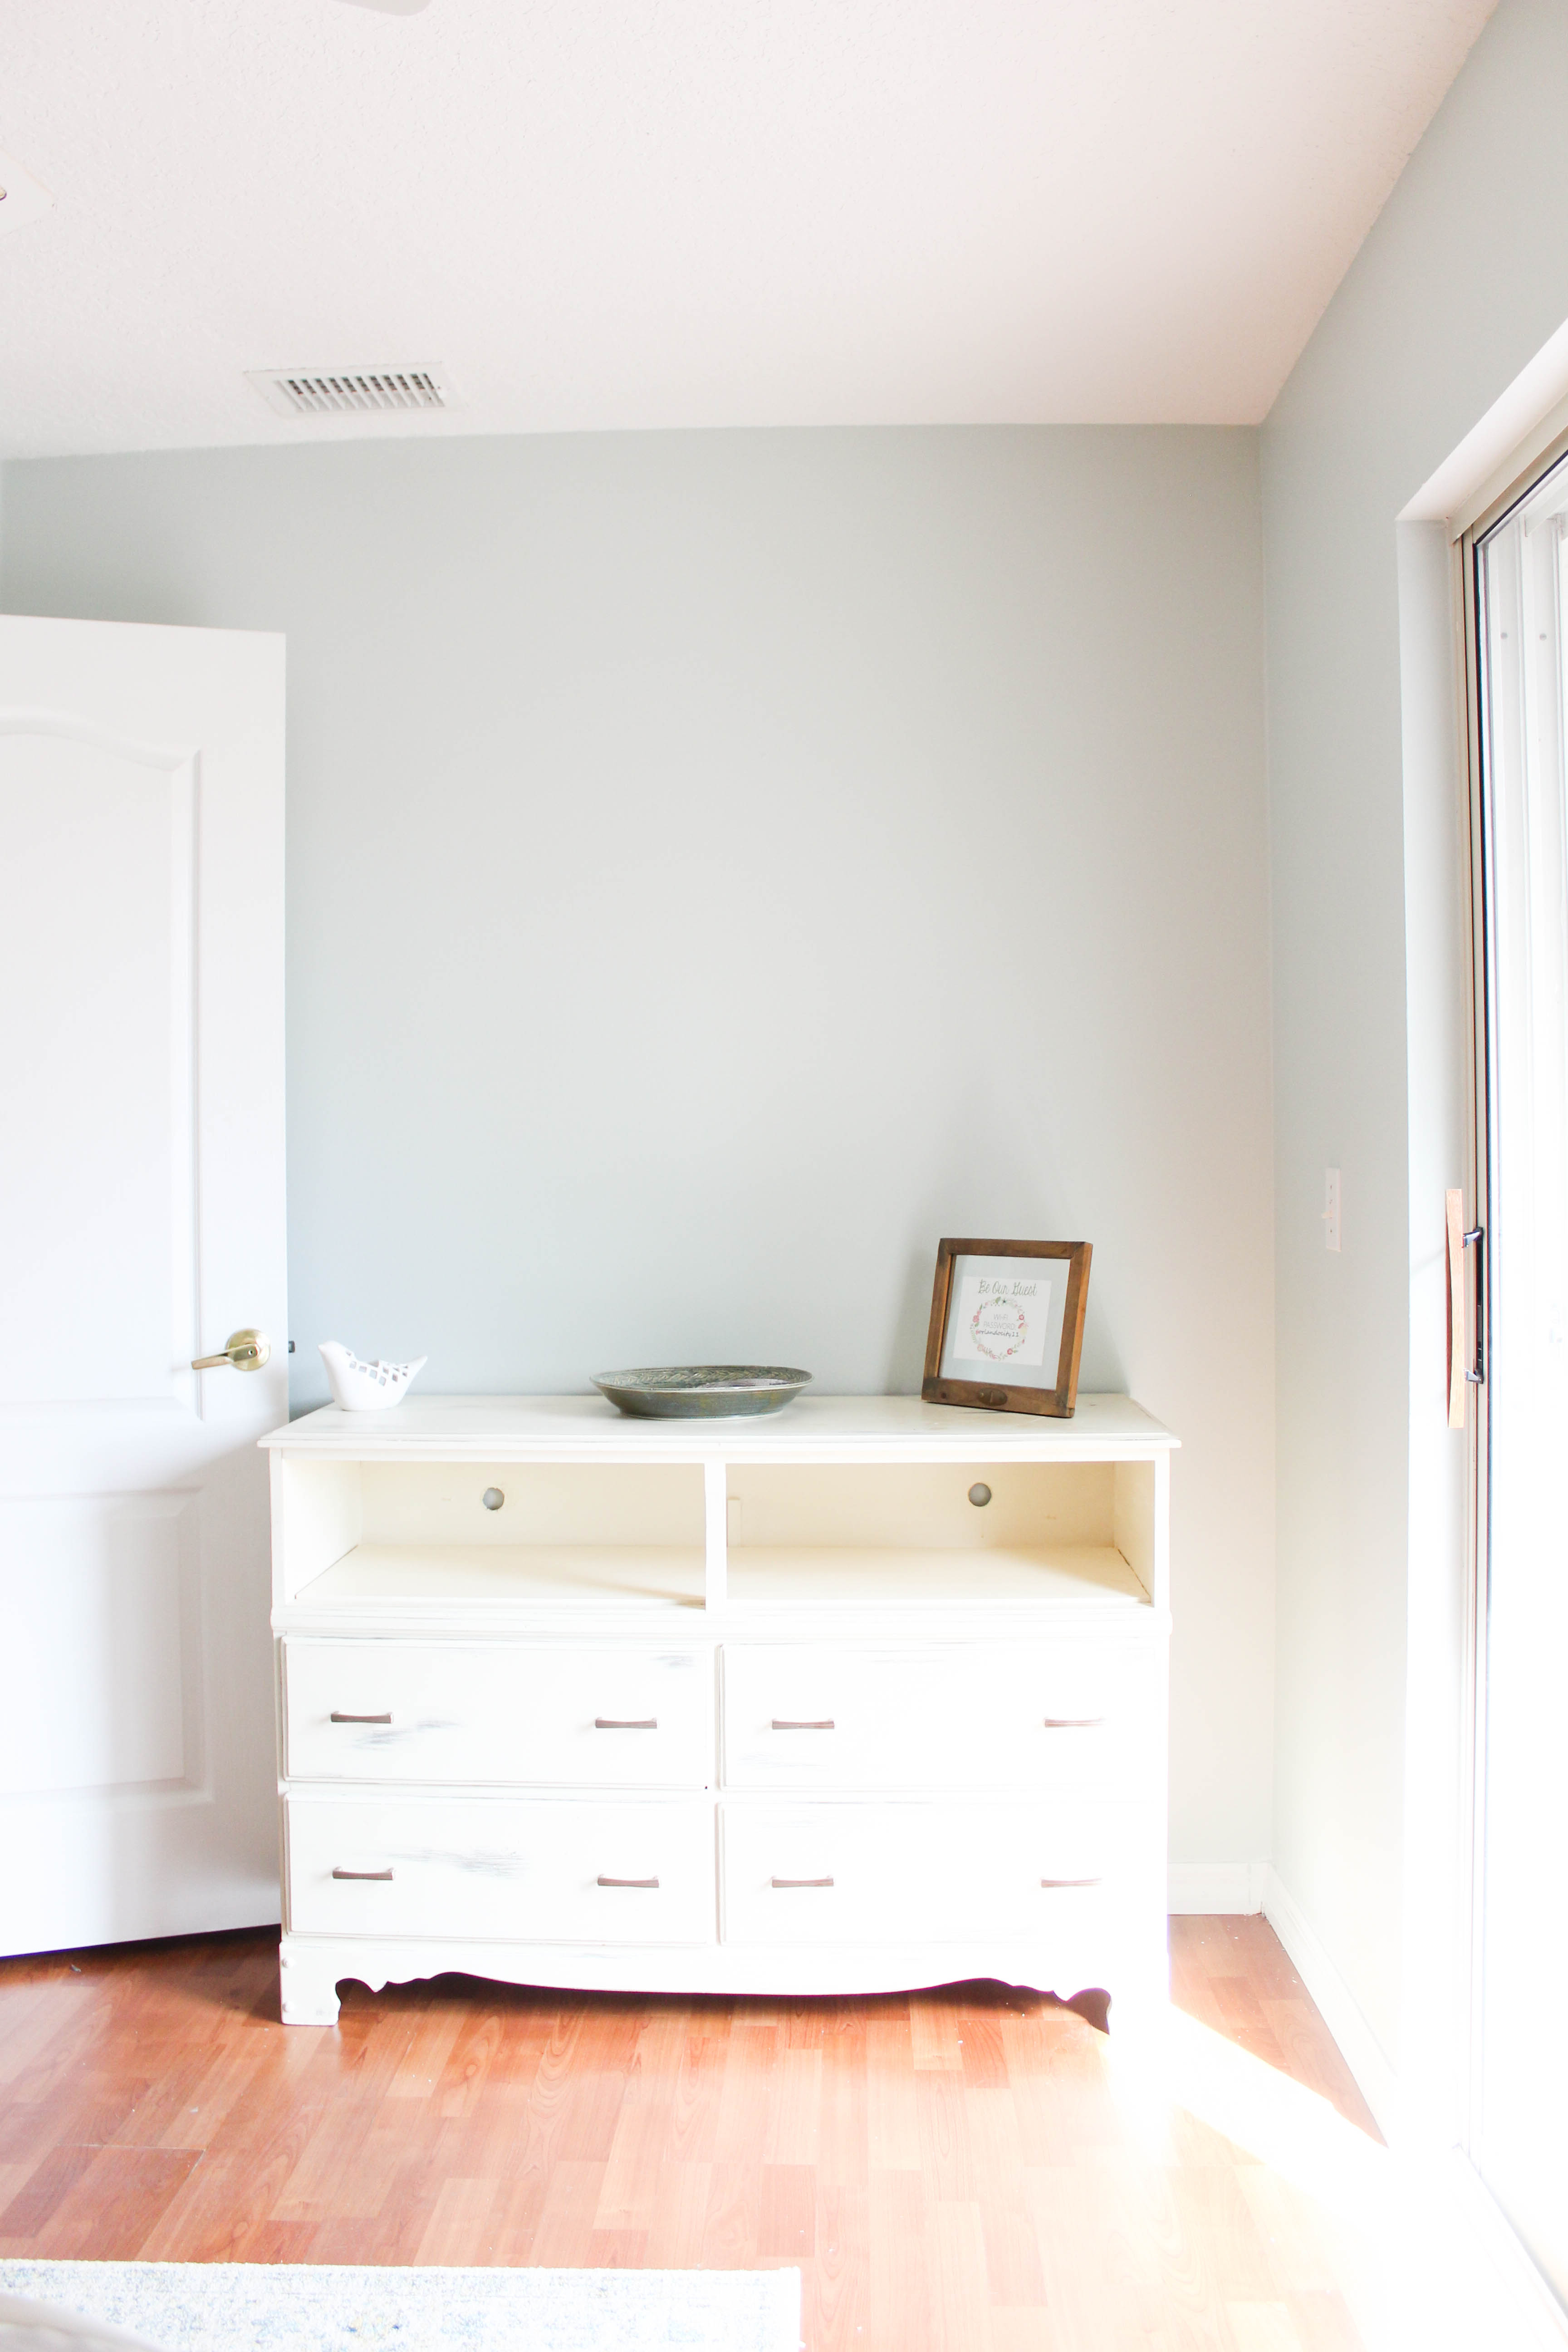 The Power Of Paint With Our Guest Bedroom Refresh Within The Grove